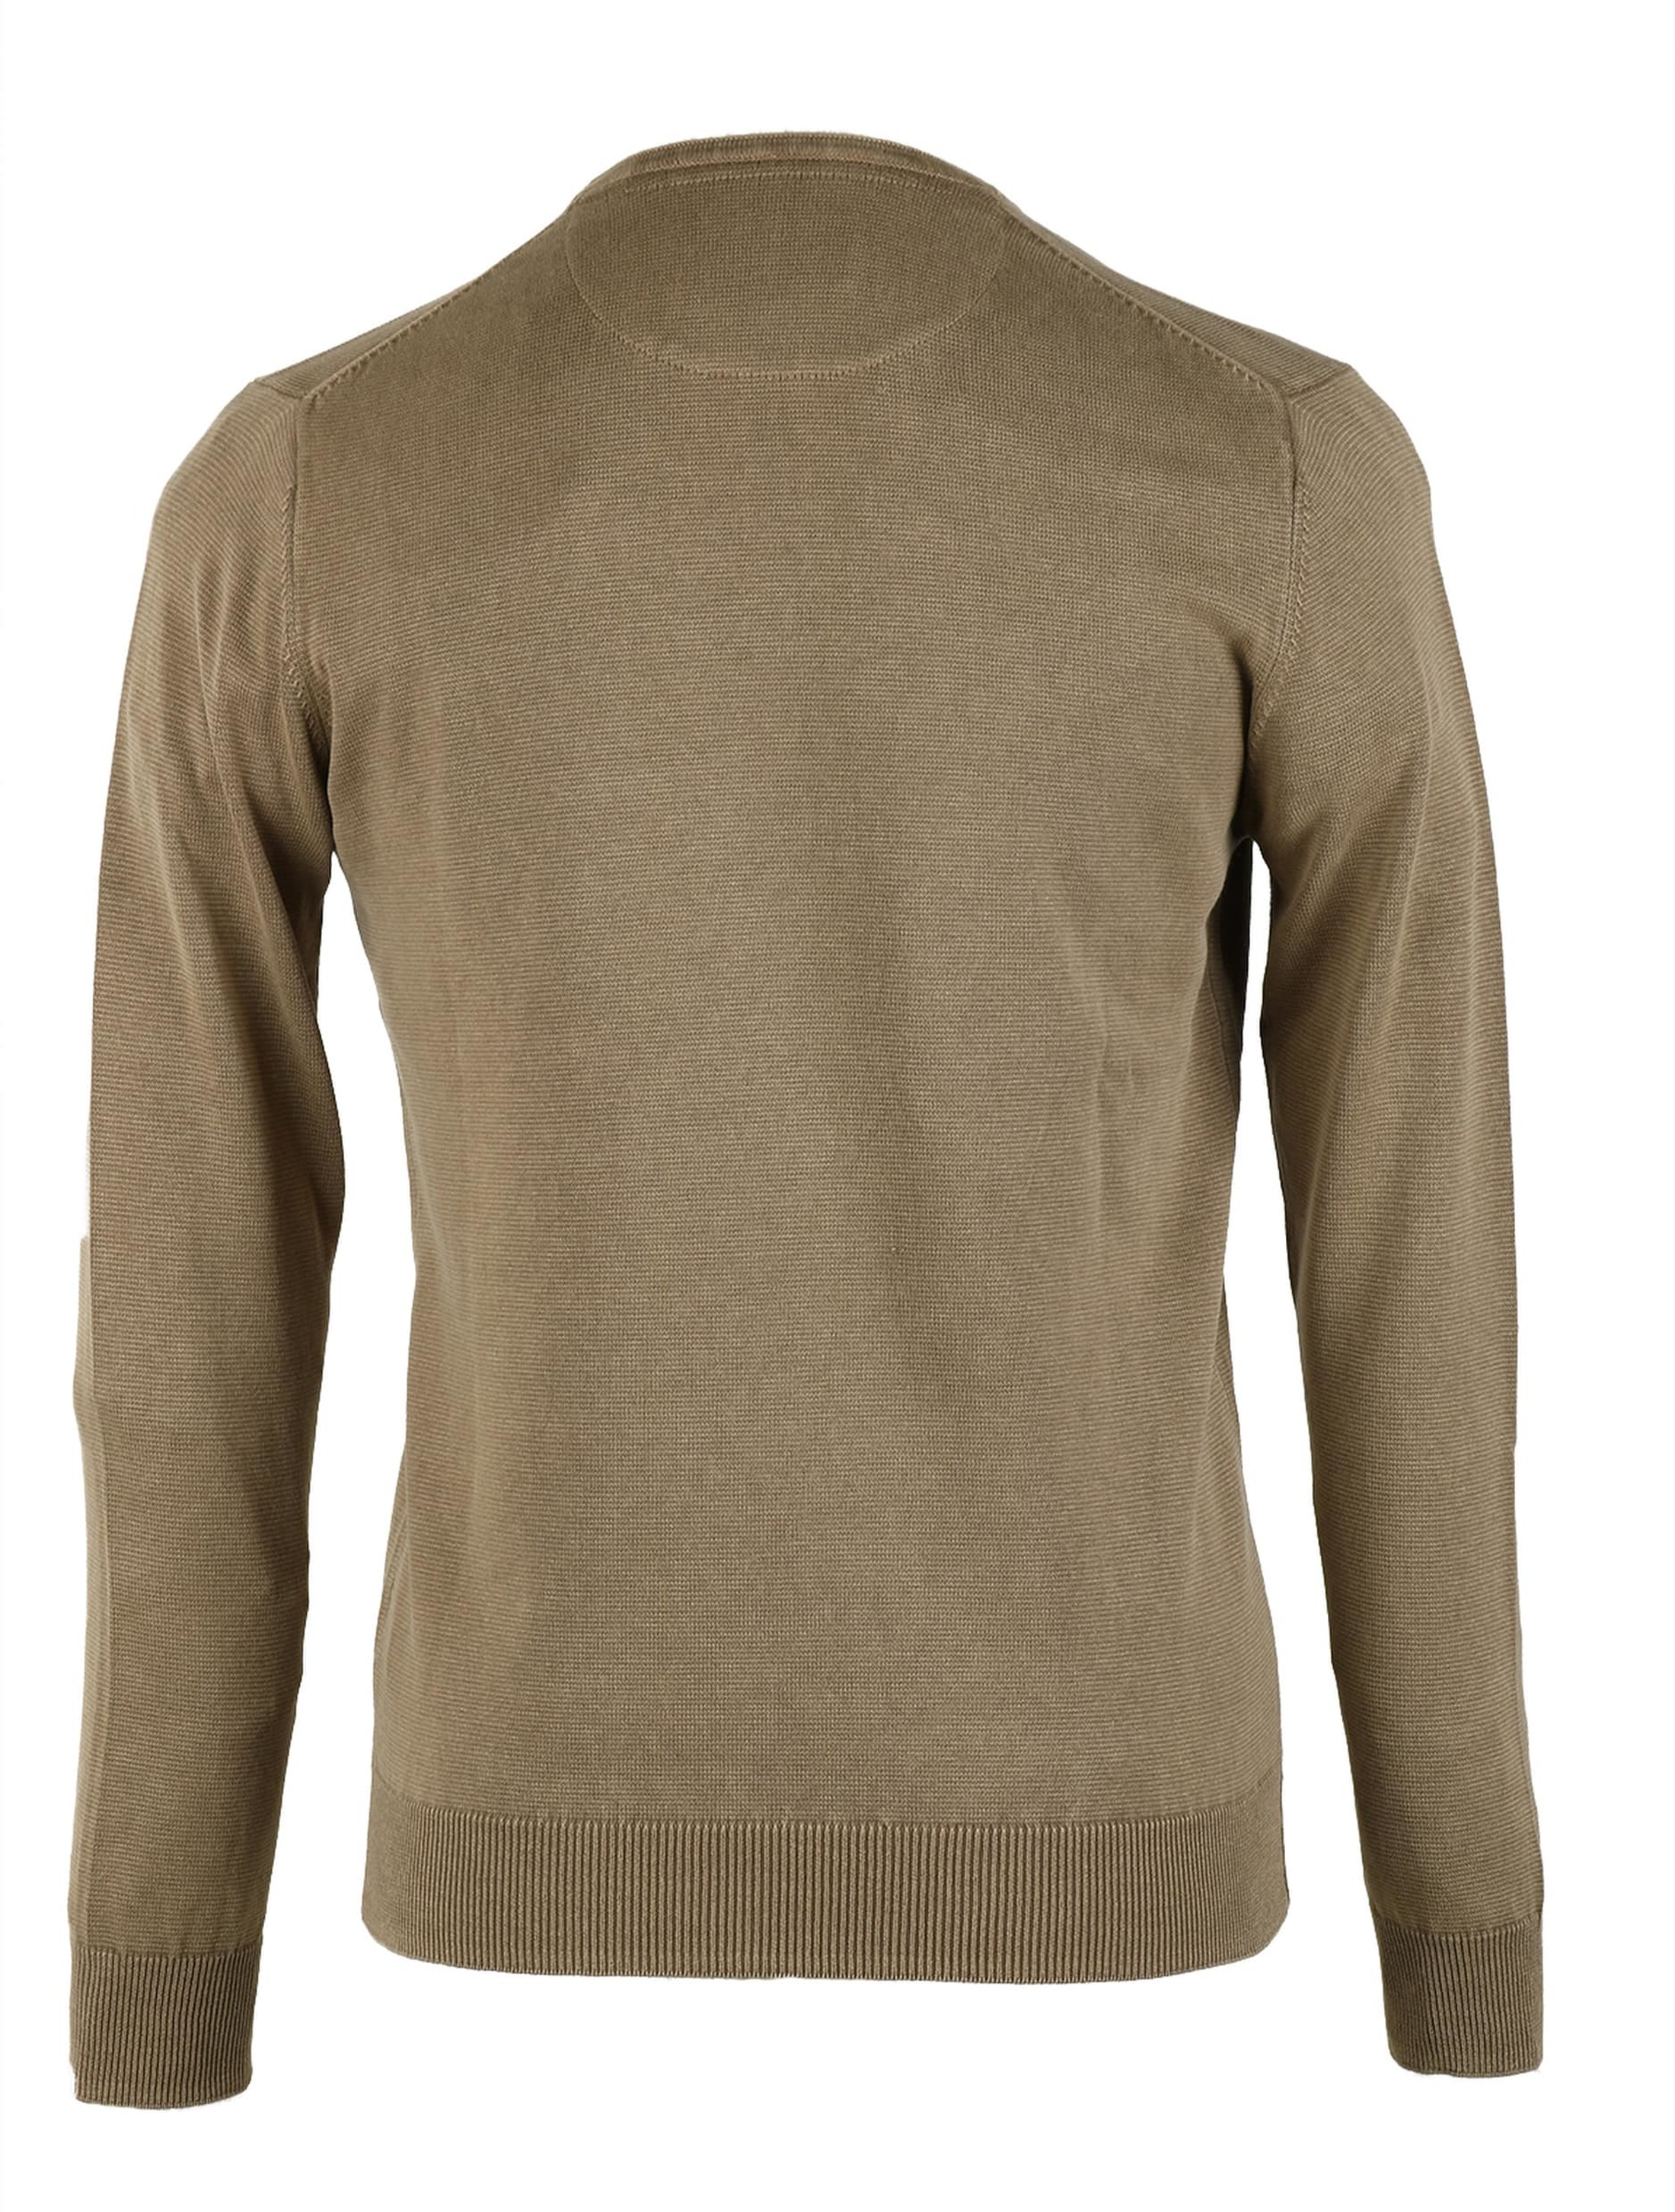 Pullover Washed Ribs Khaki foto 2